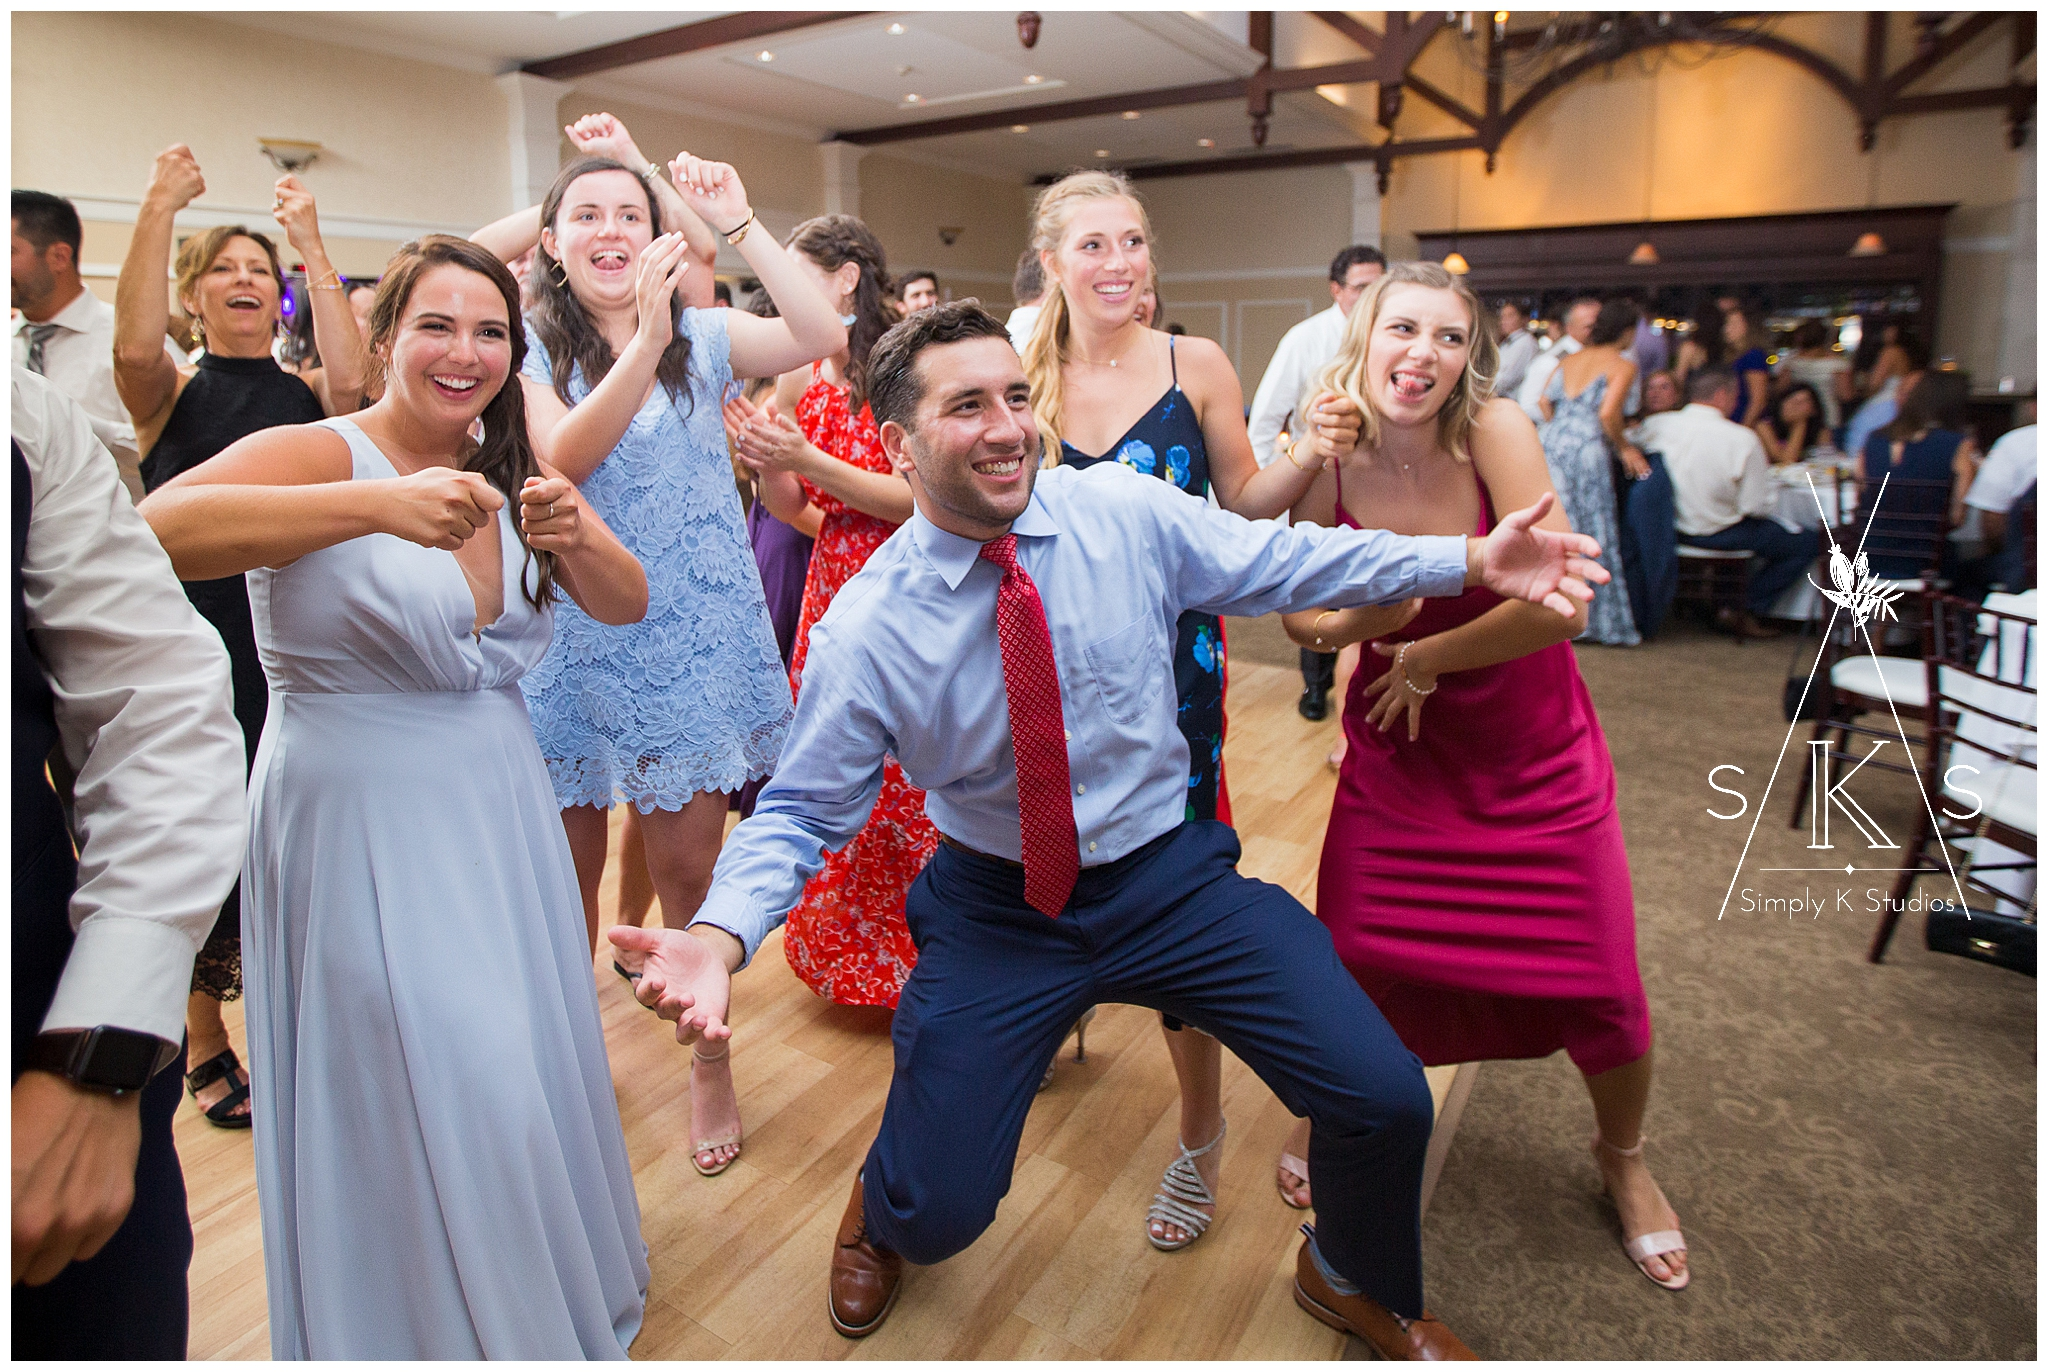 146 Dancing at a Wedding.jpg